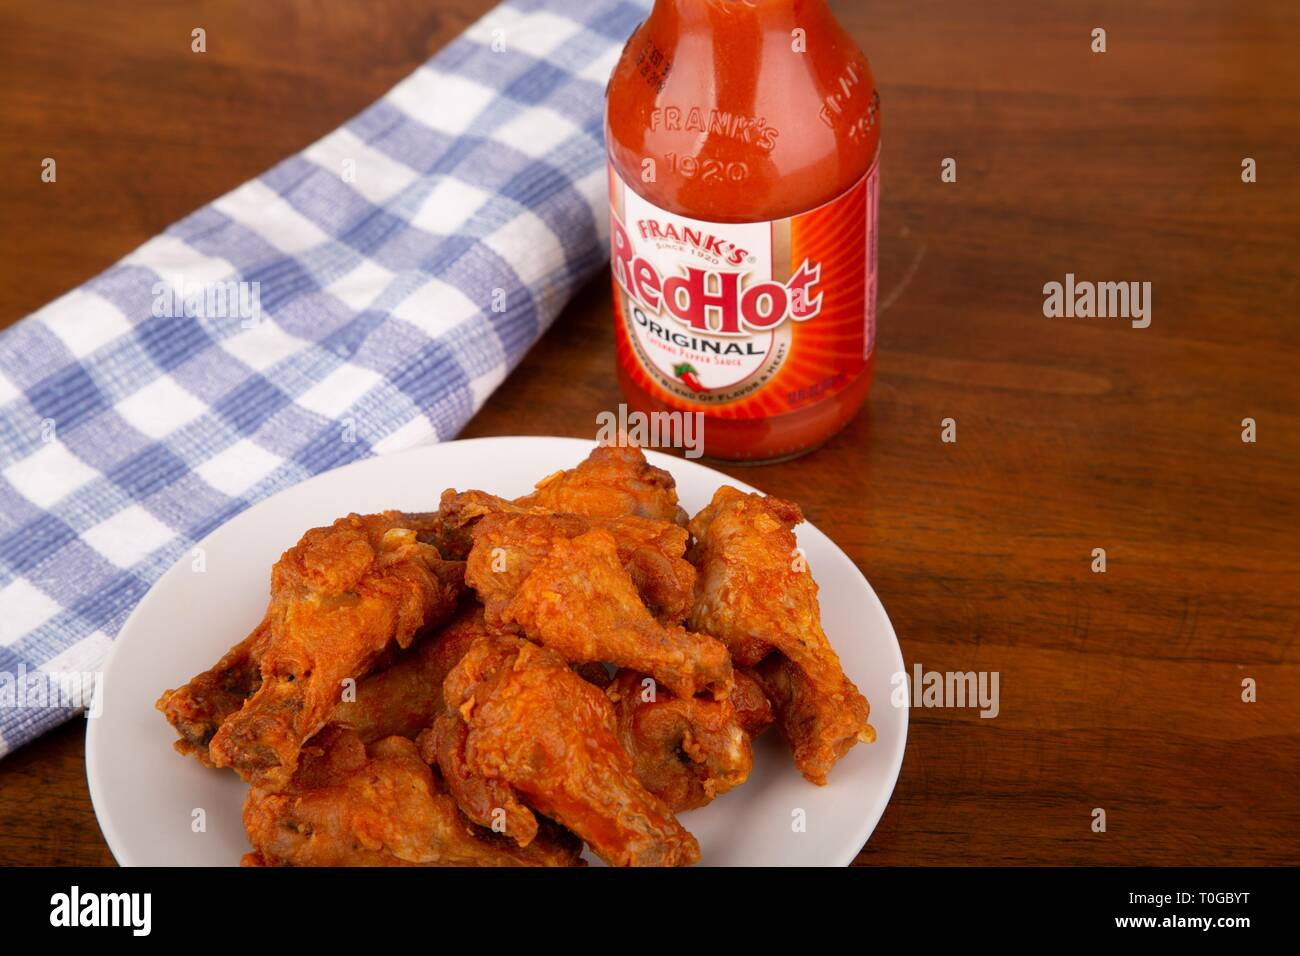 Franks Red Hot Sauce Stock Photos Franks Red Hot Sauce